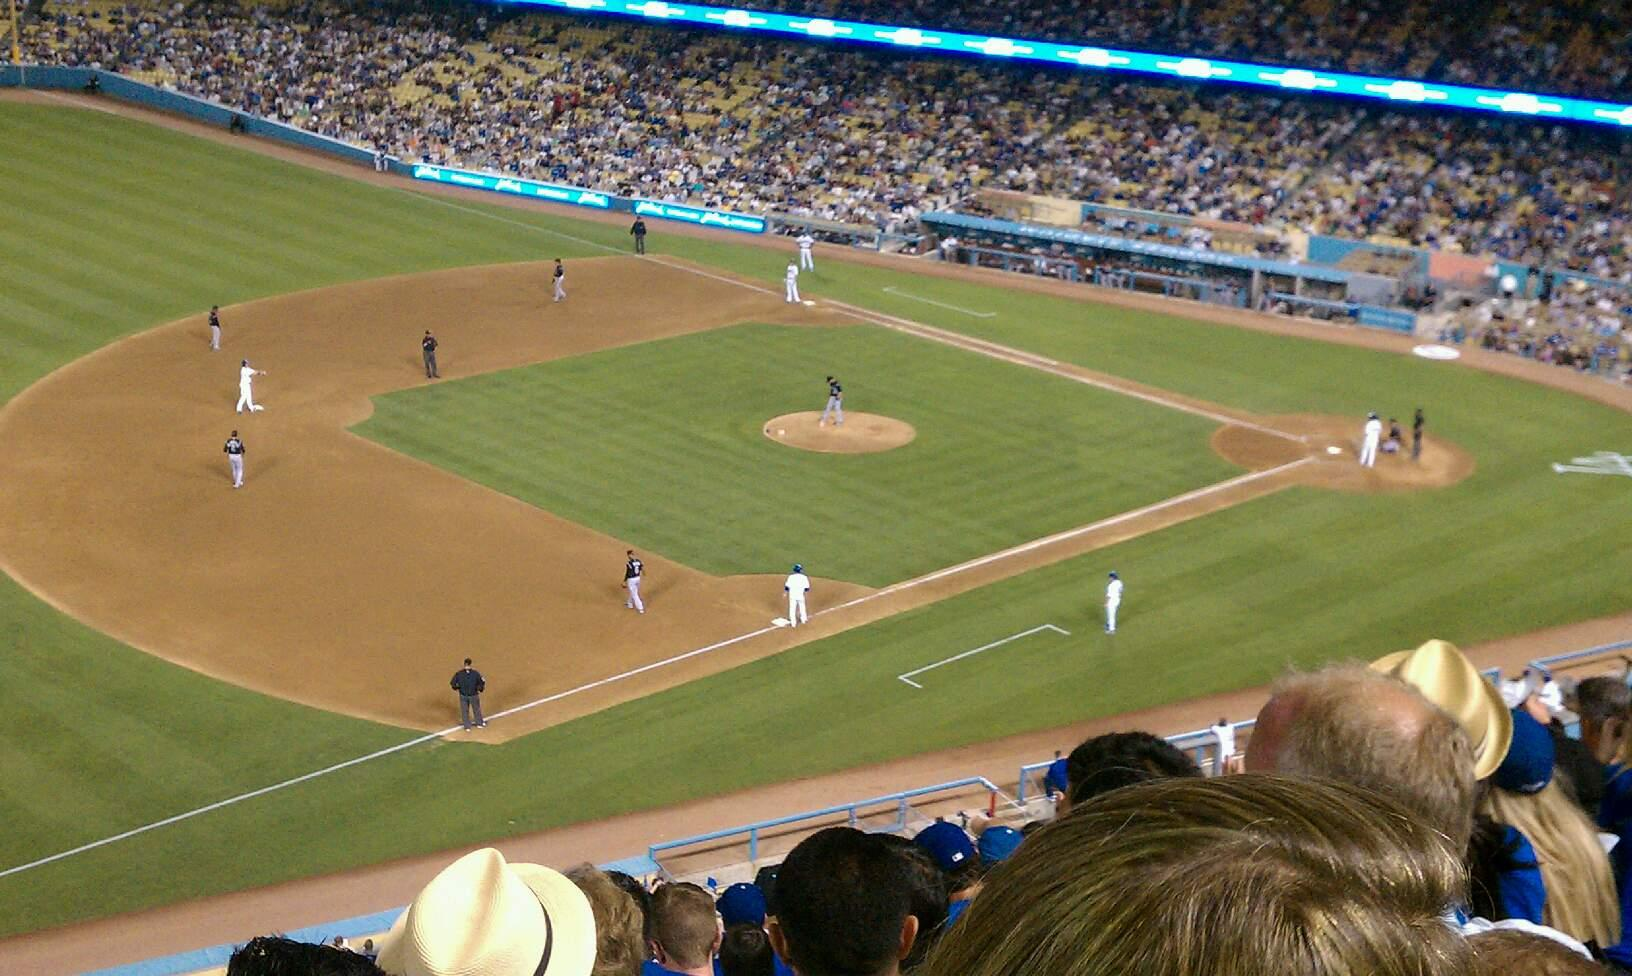 Dodger Stadium Section 31rs Row n Seat 11